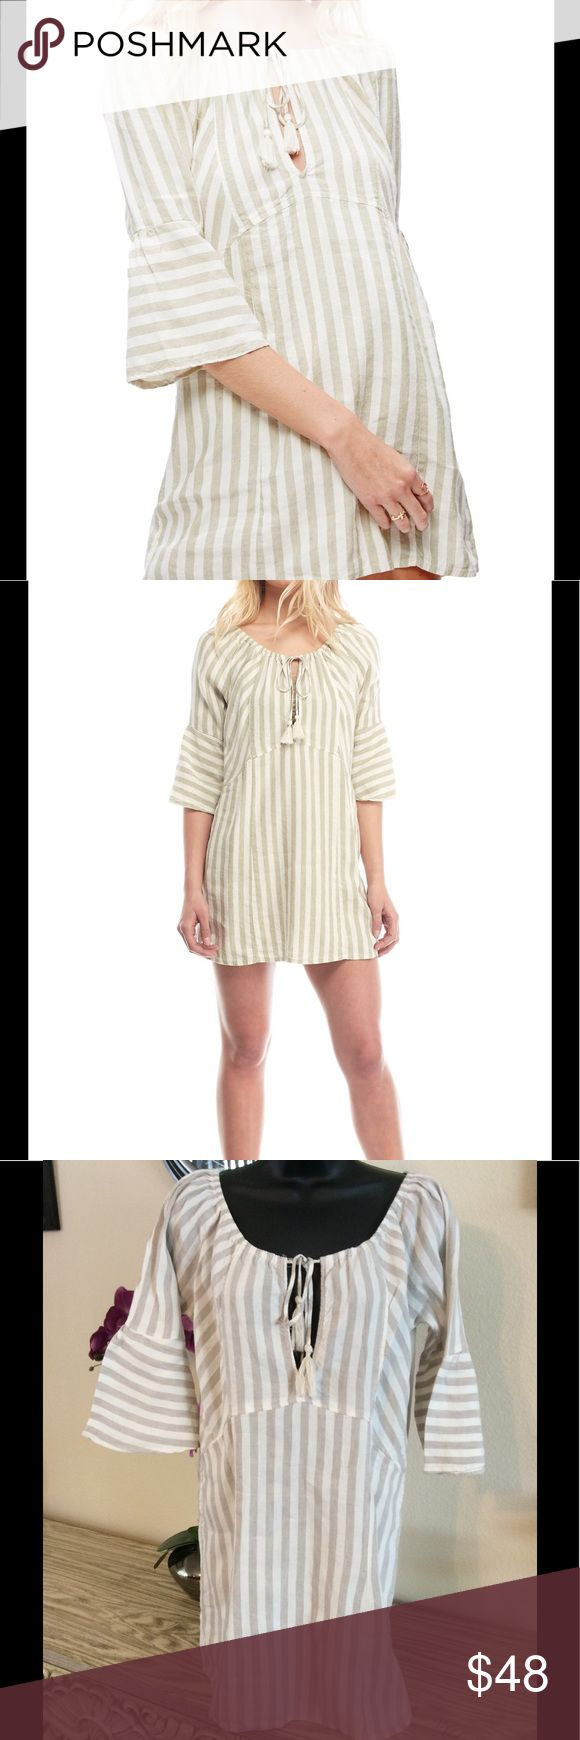 """Free People Striped Linen Dress Cute tan and cream beach style dress. Linen and rayon Blend. Ties at neckline. 19"""" from armpit to armpit and 30"""" long. No stains or big rips. One tiny snag shown in last pic. Could be fixed with a little stitch or patch. Free People Dresses Mini"""